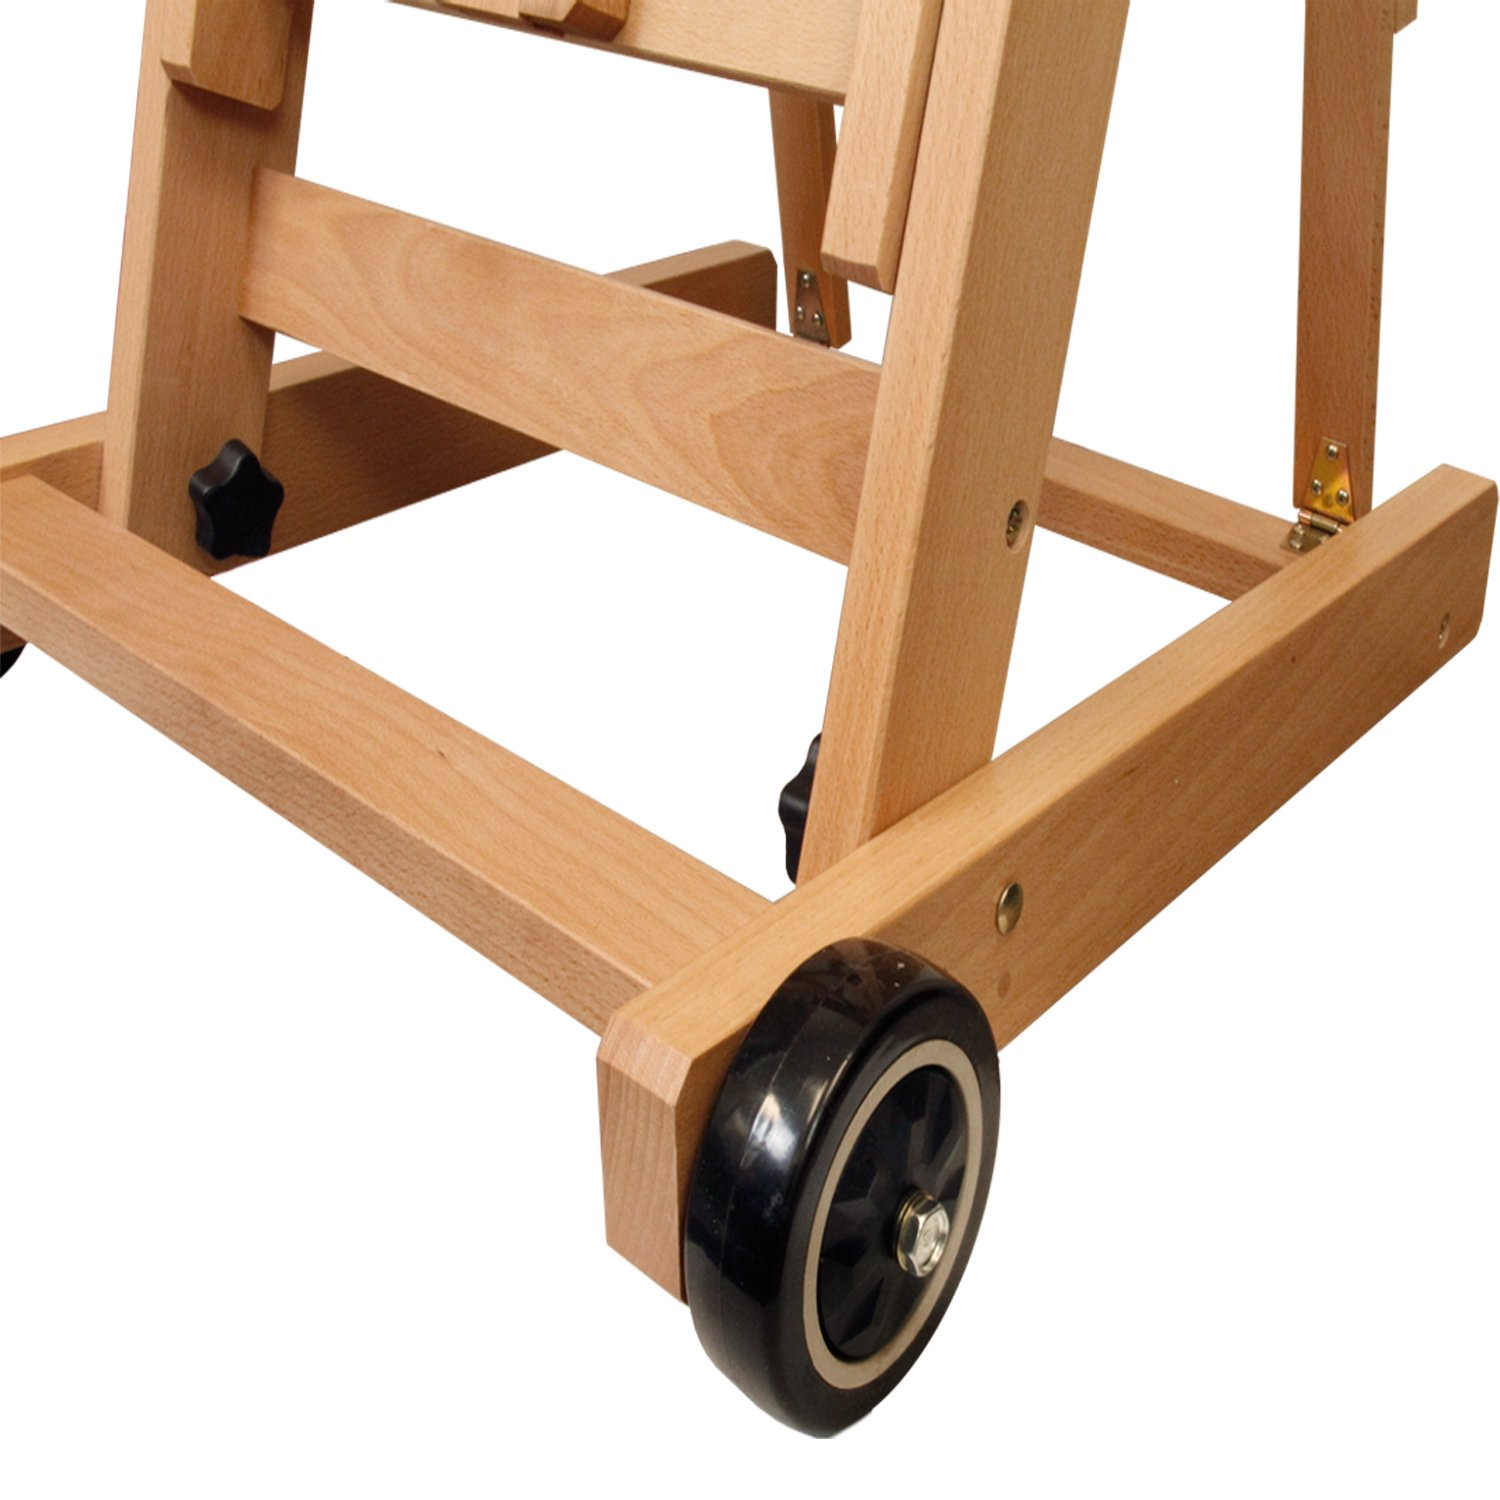 US Art Supply Master Multi-Function Studio Artist Wood Floor Easel, 19''Wide x 21''Deep x 56-1/2''High, (Adjusts to 97''High) by US Art Supply (Image #3)